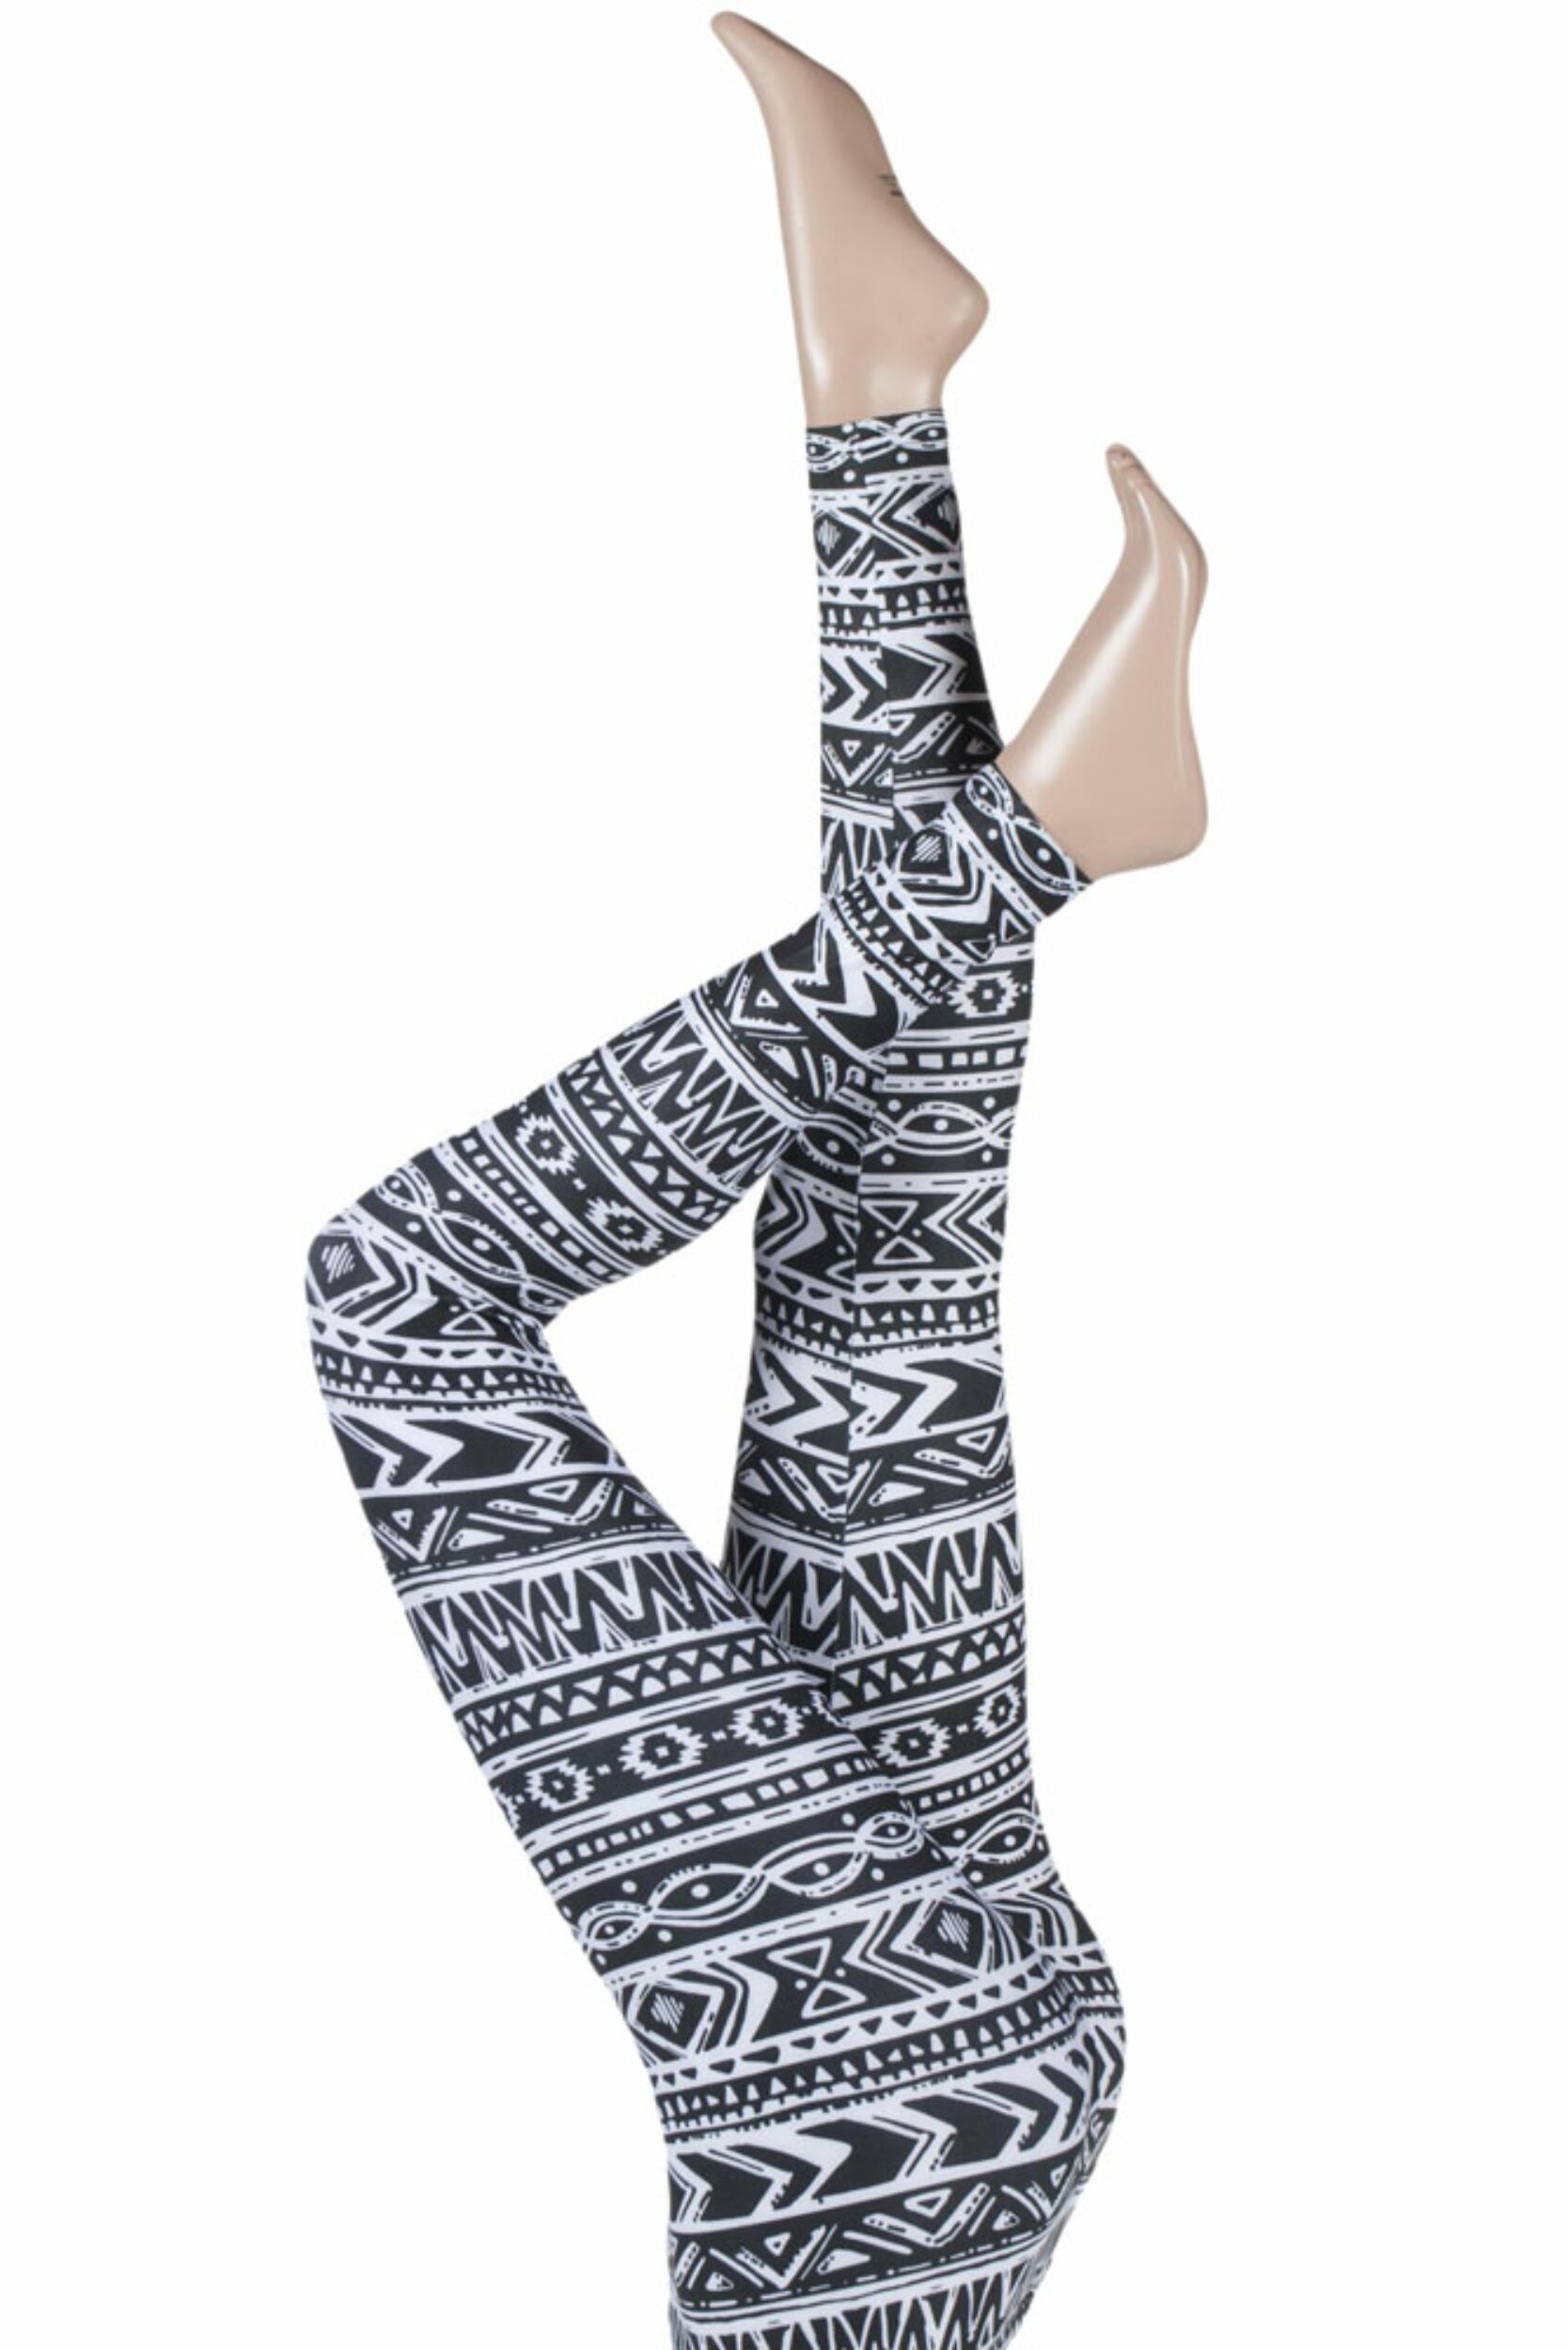 1 Pair Silky Aztec Fair Isle Design Everyday Leggings